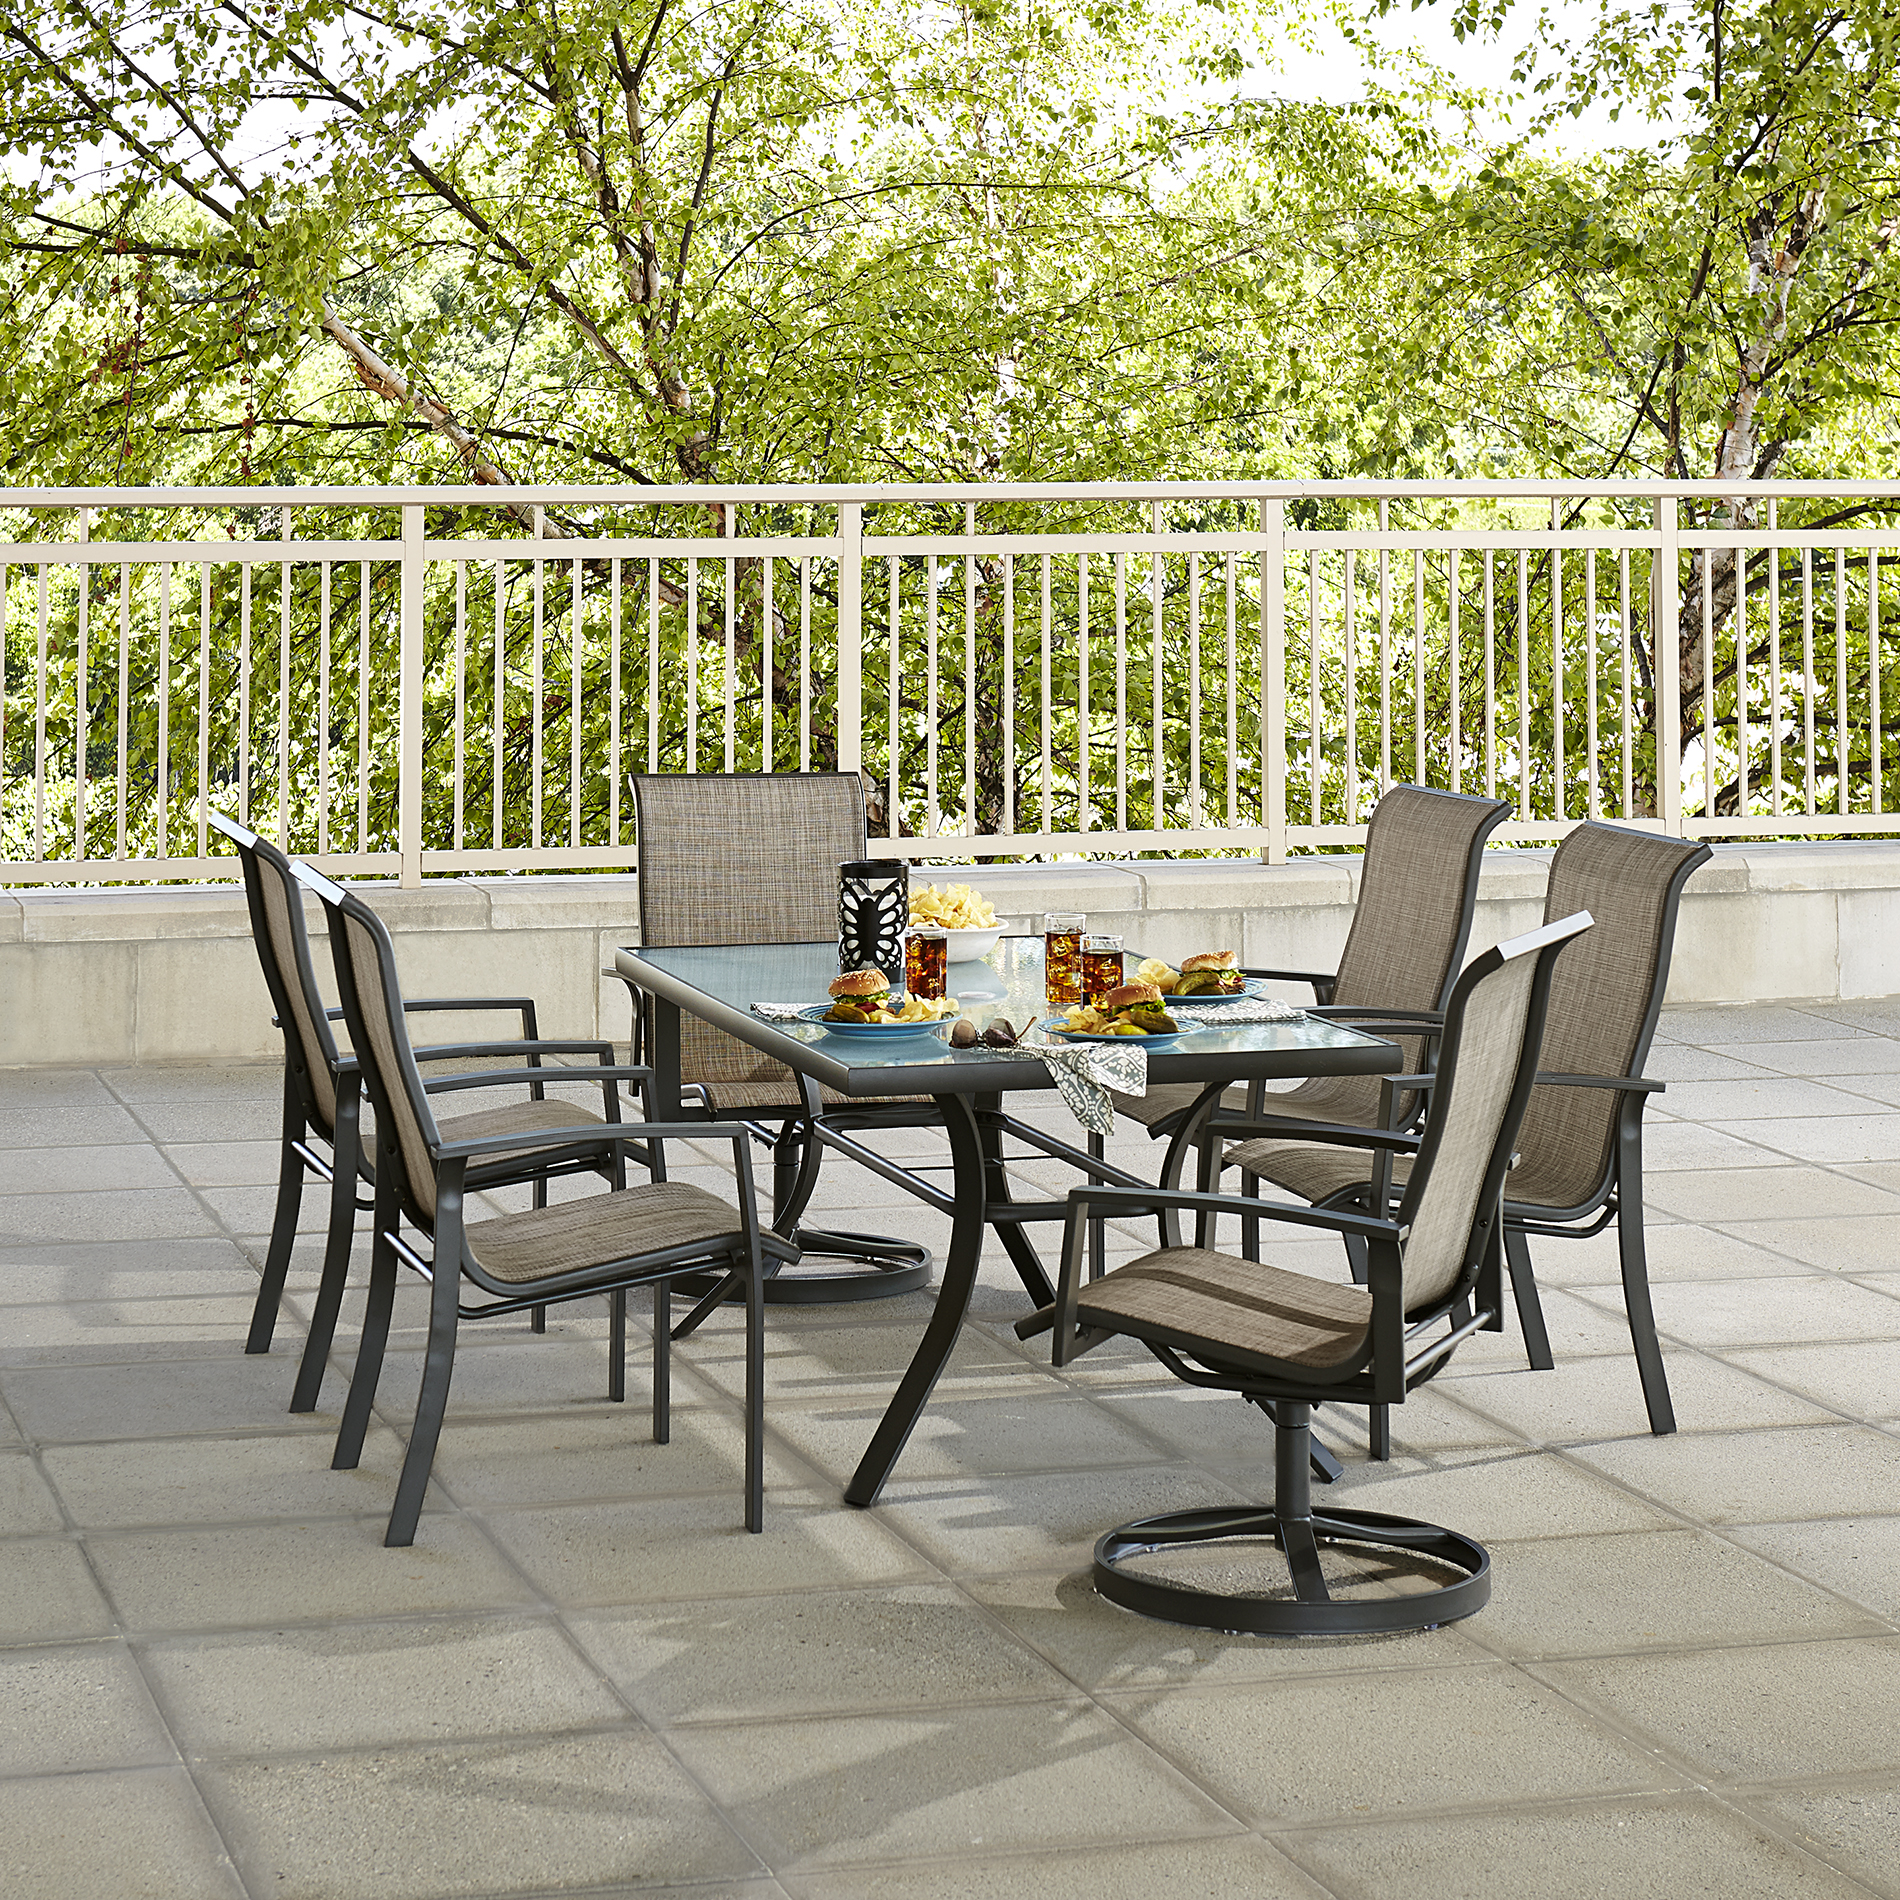 Patio Dining Sets At Kmart Style  pixelmaricom